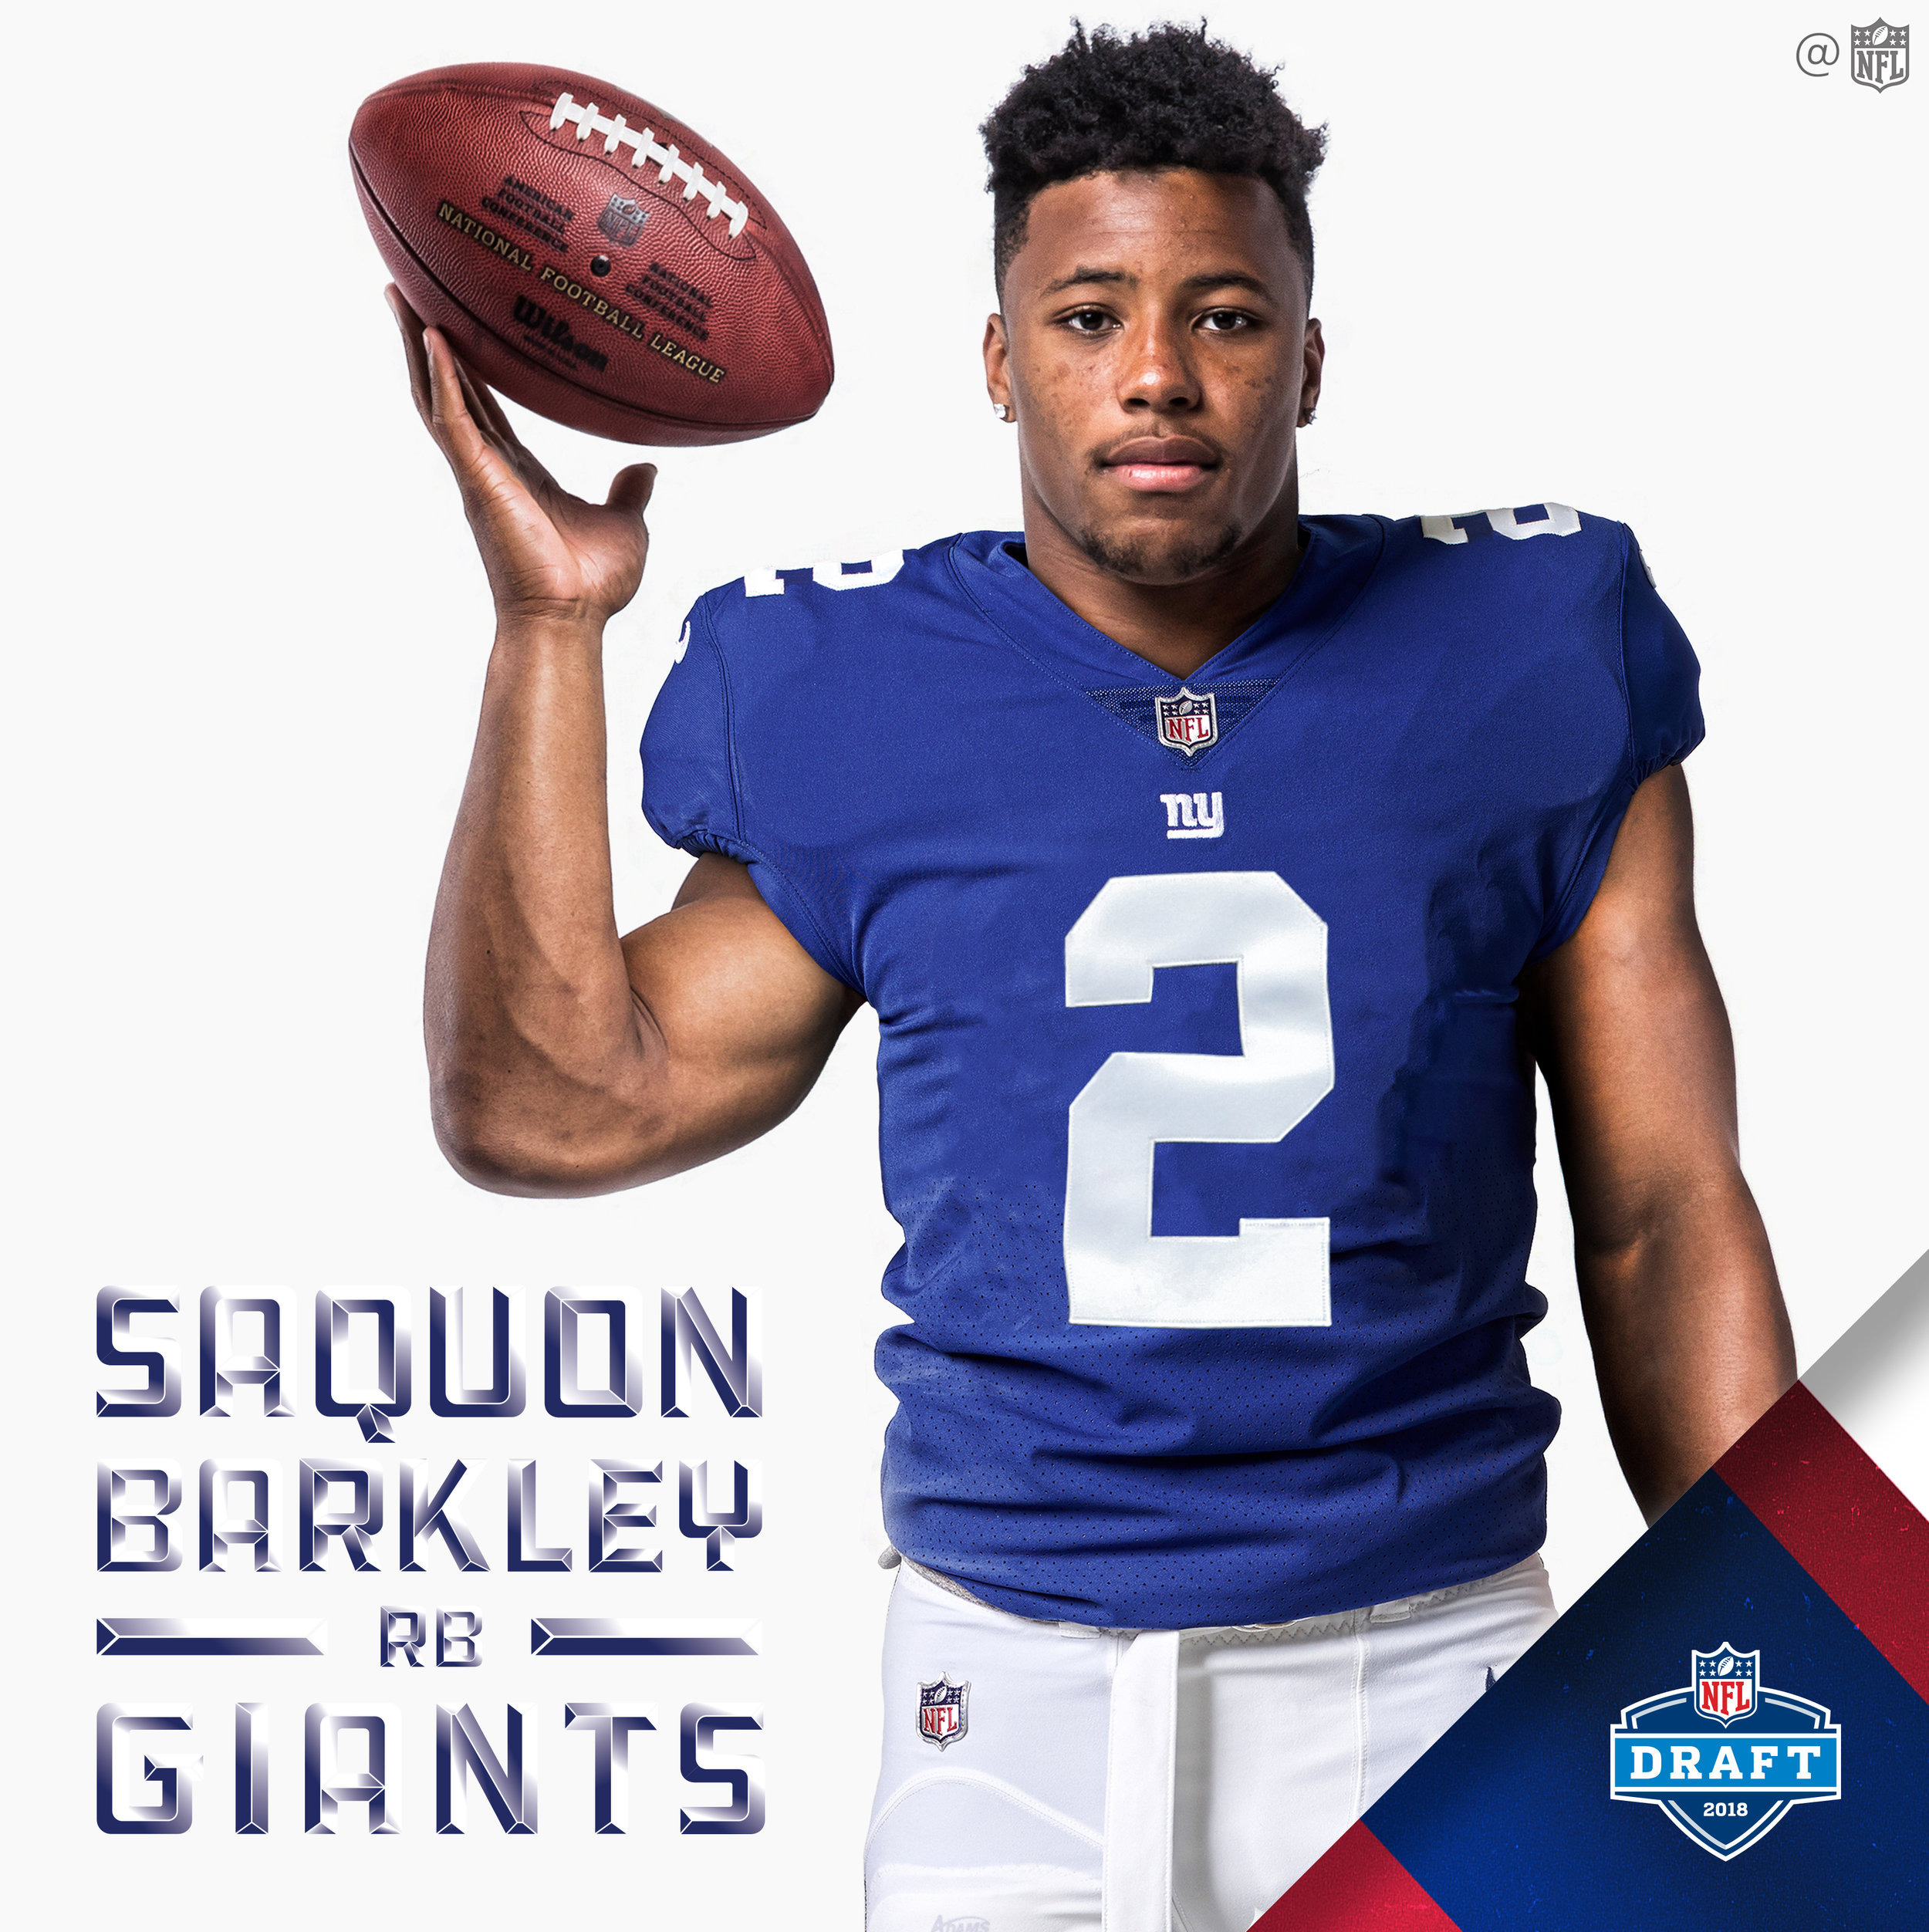 Saquon Barkley_Giants.jpg